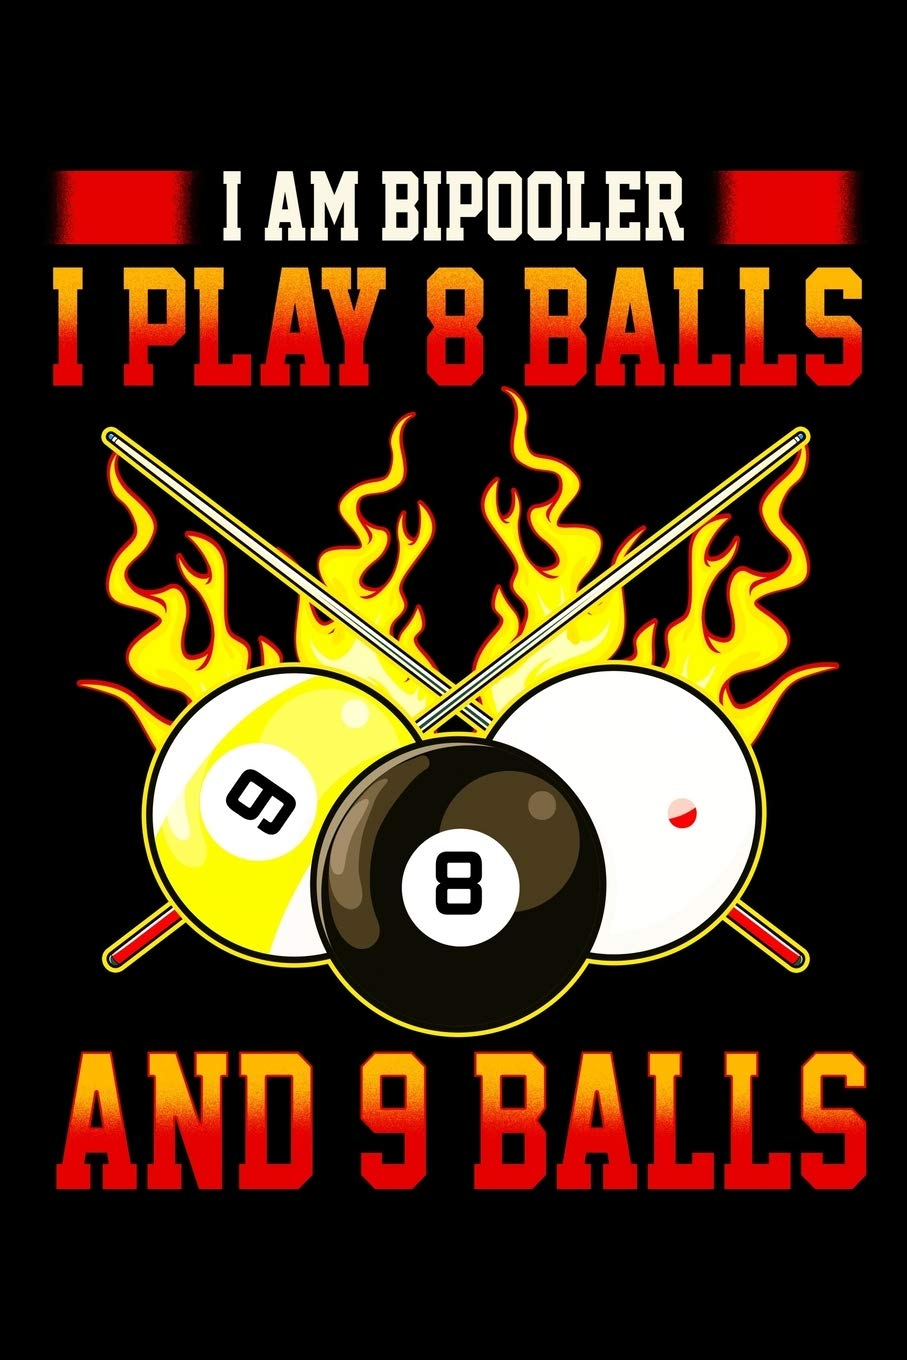 I am Bipooler I Play 8 Balls And 9 Balls: Funny Billiard Snooker ...